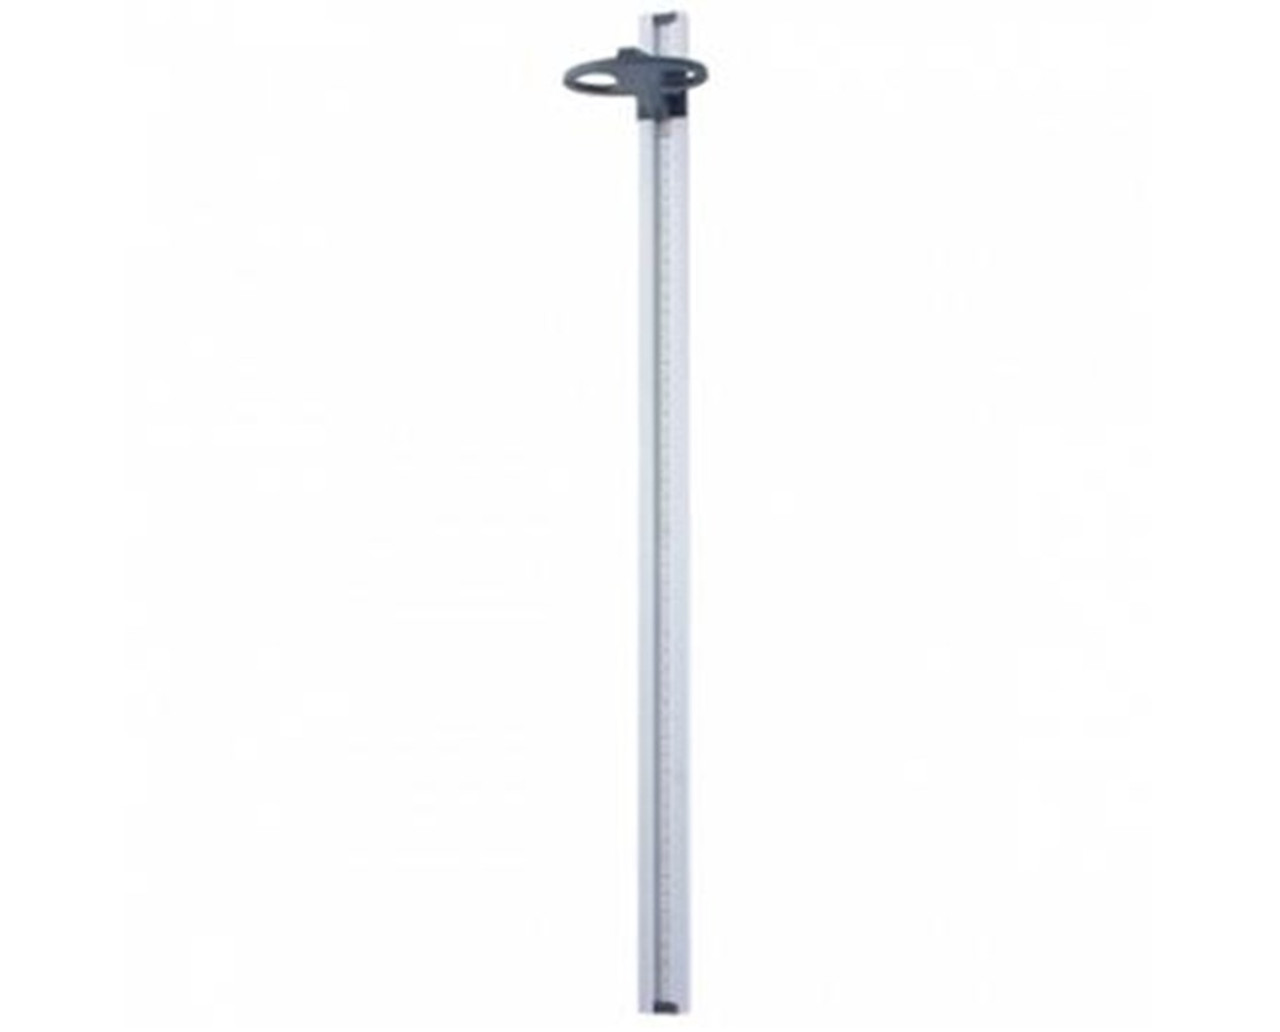 Doran DS1100 Wall-Mounted Plastic Height Rod